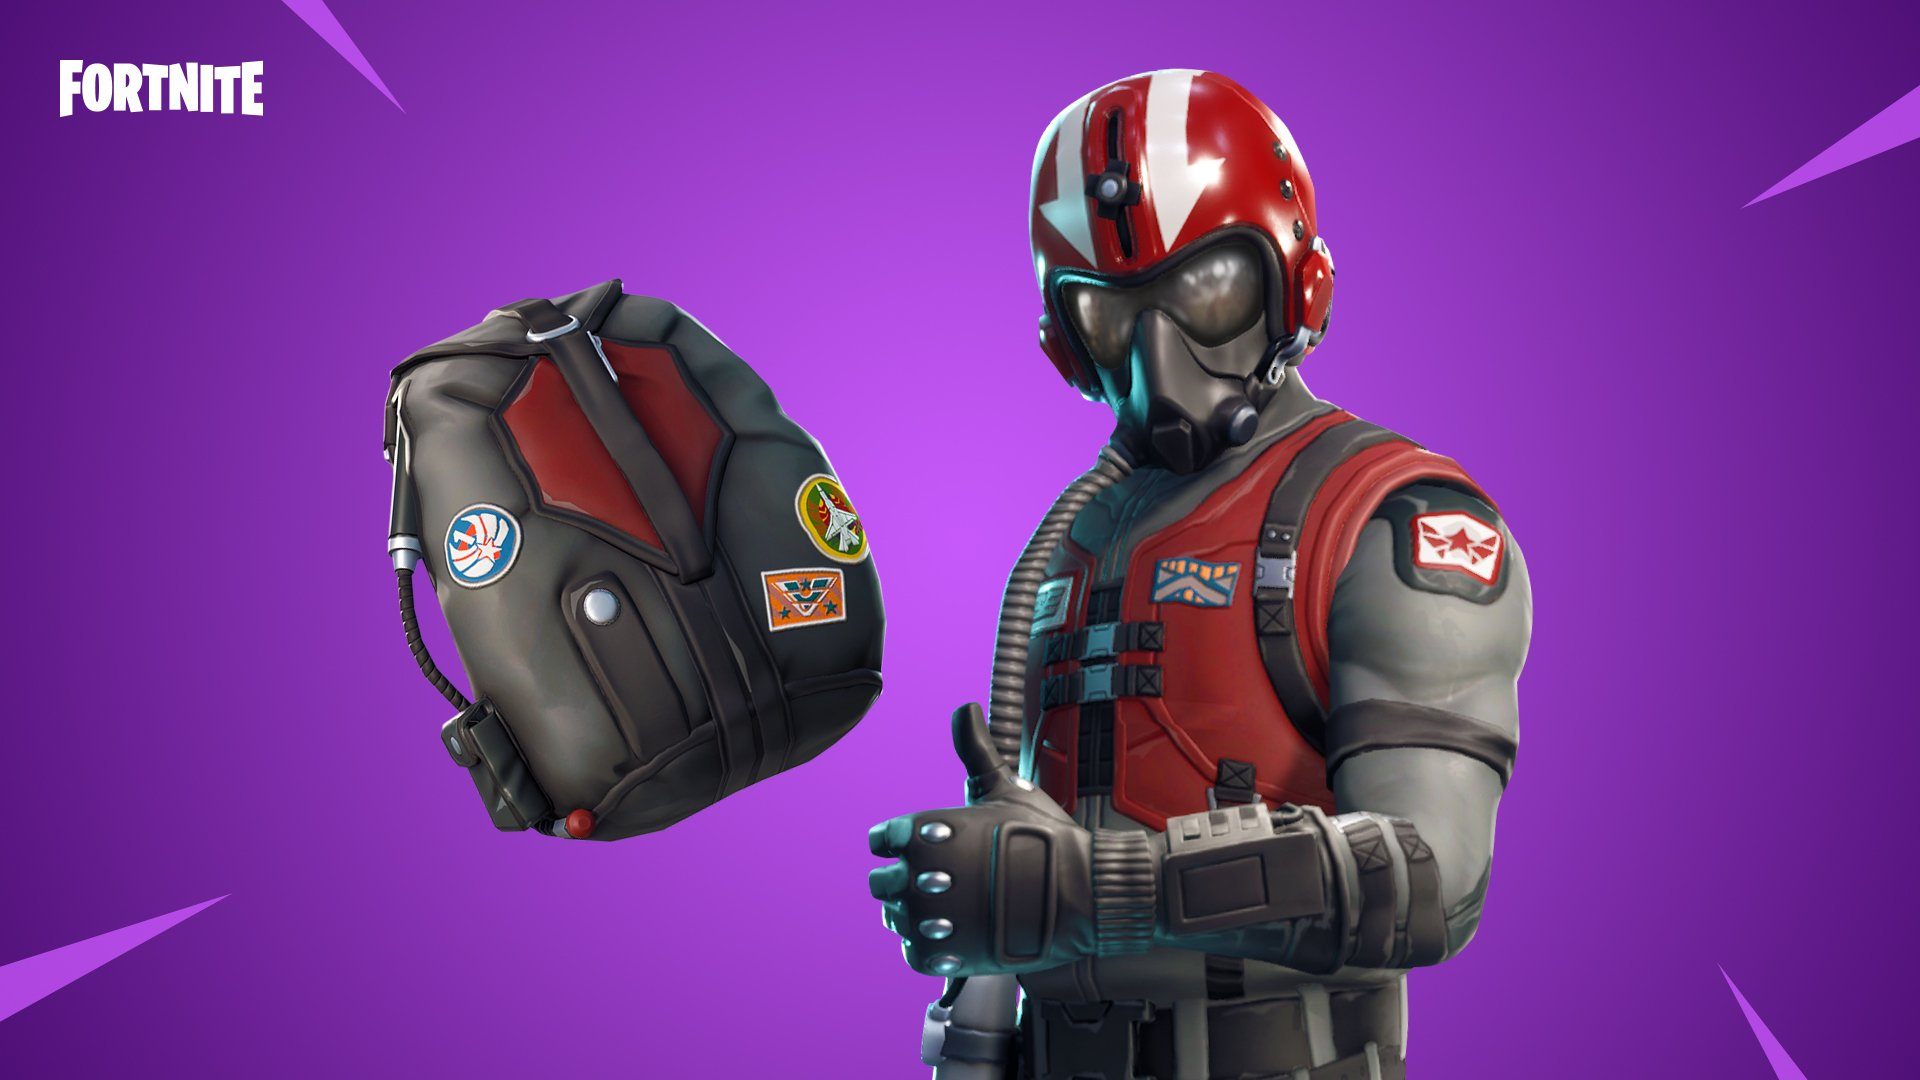 Fortnite on Twitter Need a little boost Check out the new 1920x1080